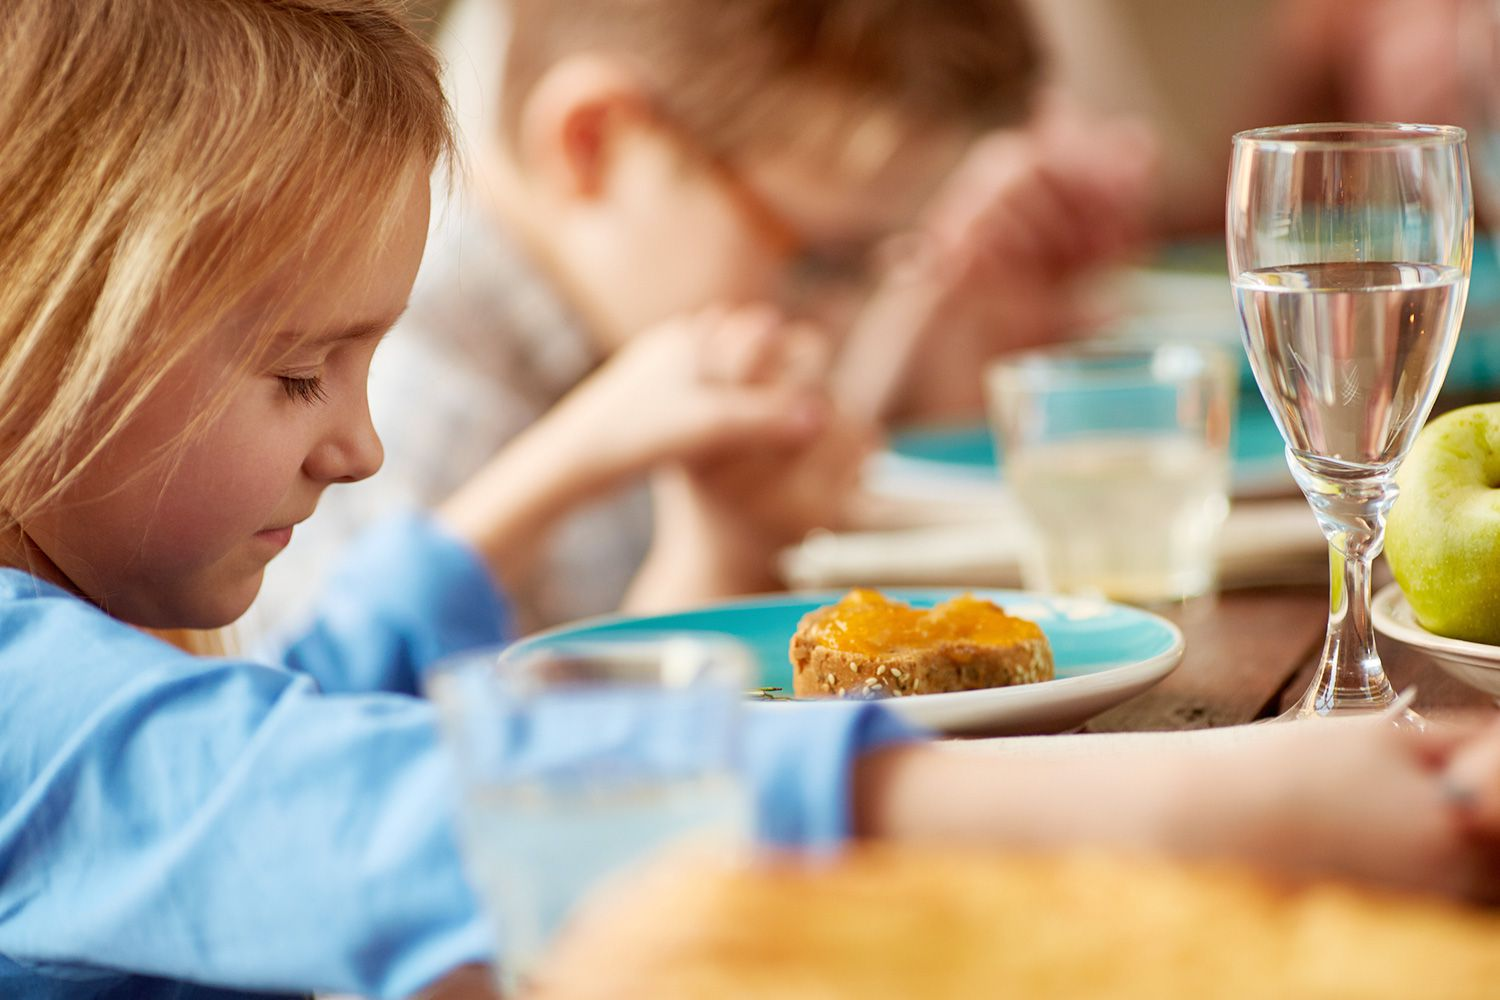 Childrens Dinner Prayers And Mealtime Blessings